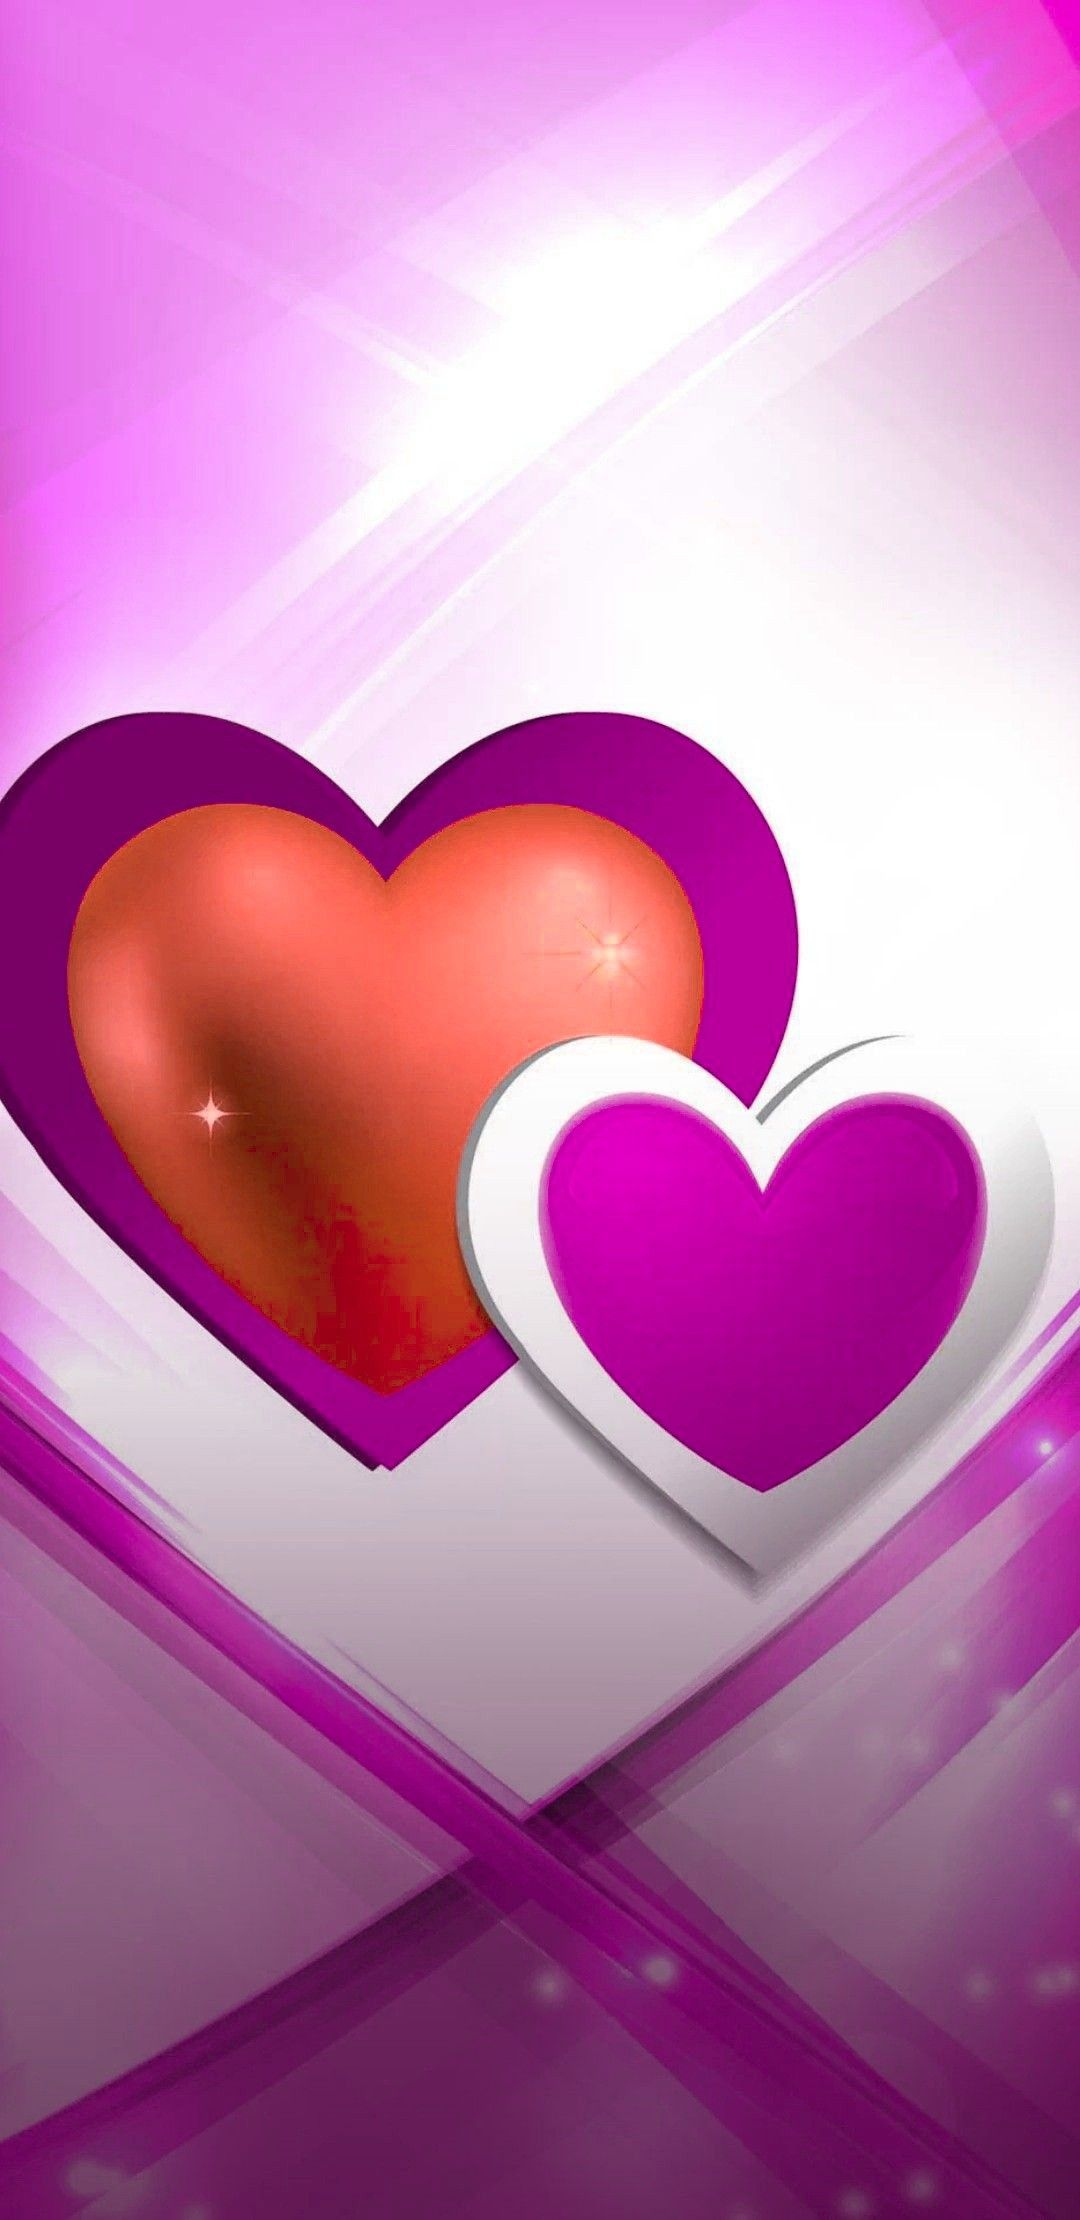 Pin By Diamond Bright On Heart Wallpapers Heart Wallpaper Beautiful Wallpapers Heart Design